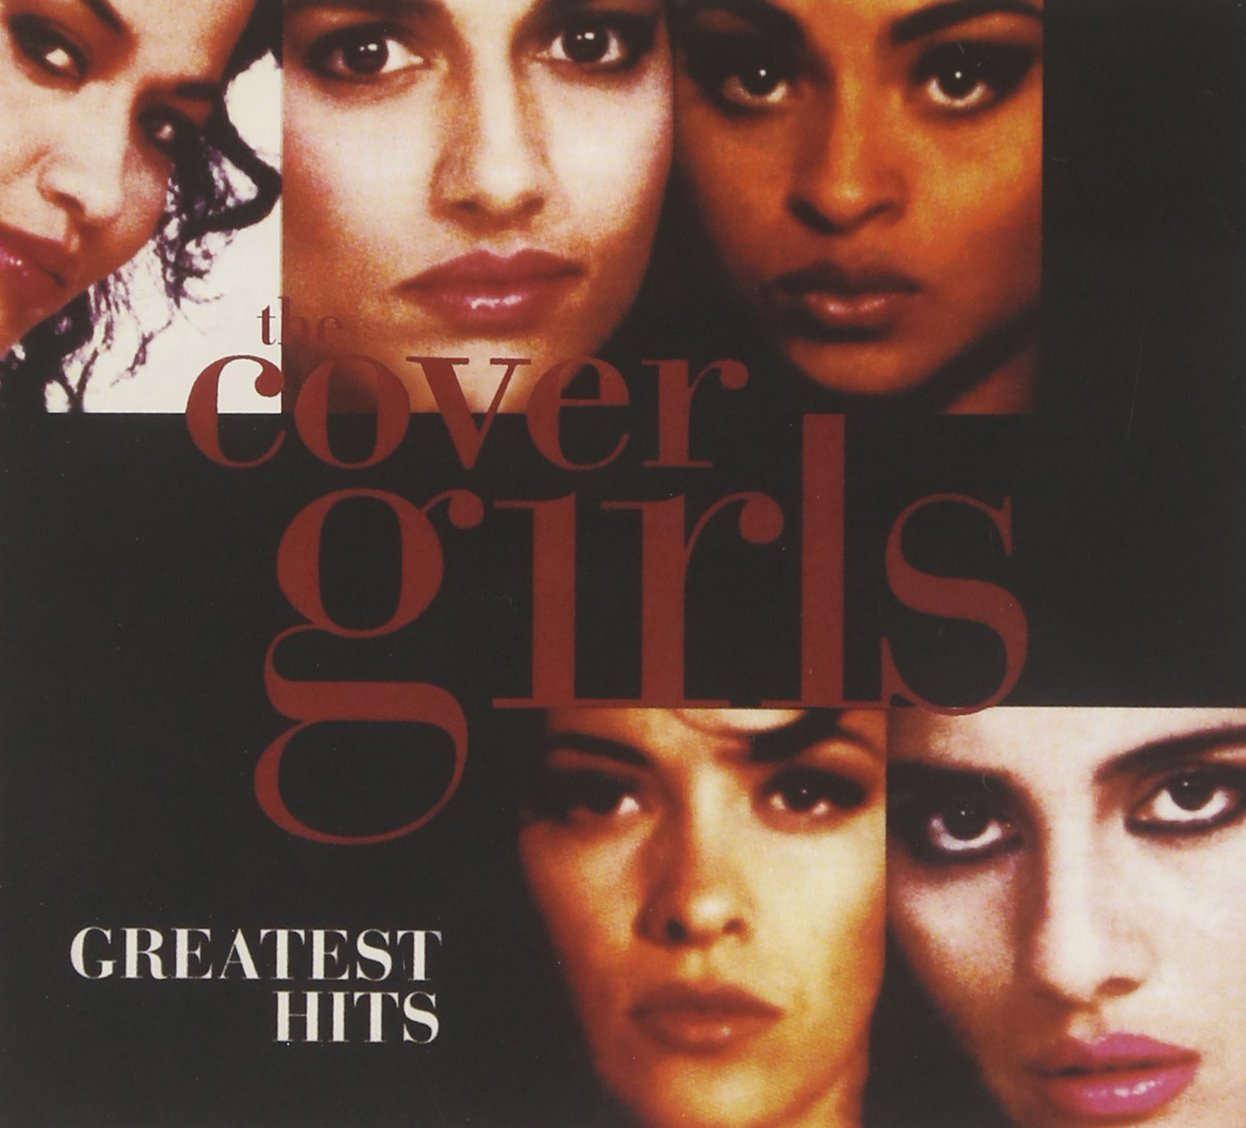 The Cover Girls - Greatest Hits [Warlock] by Cover Girls